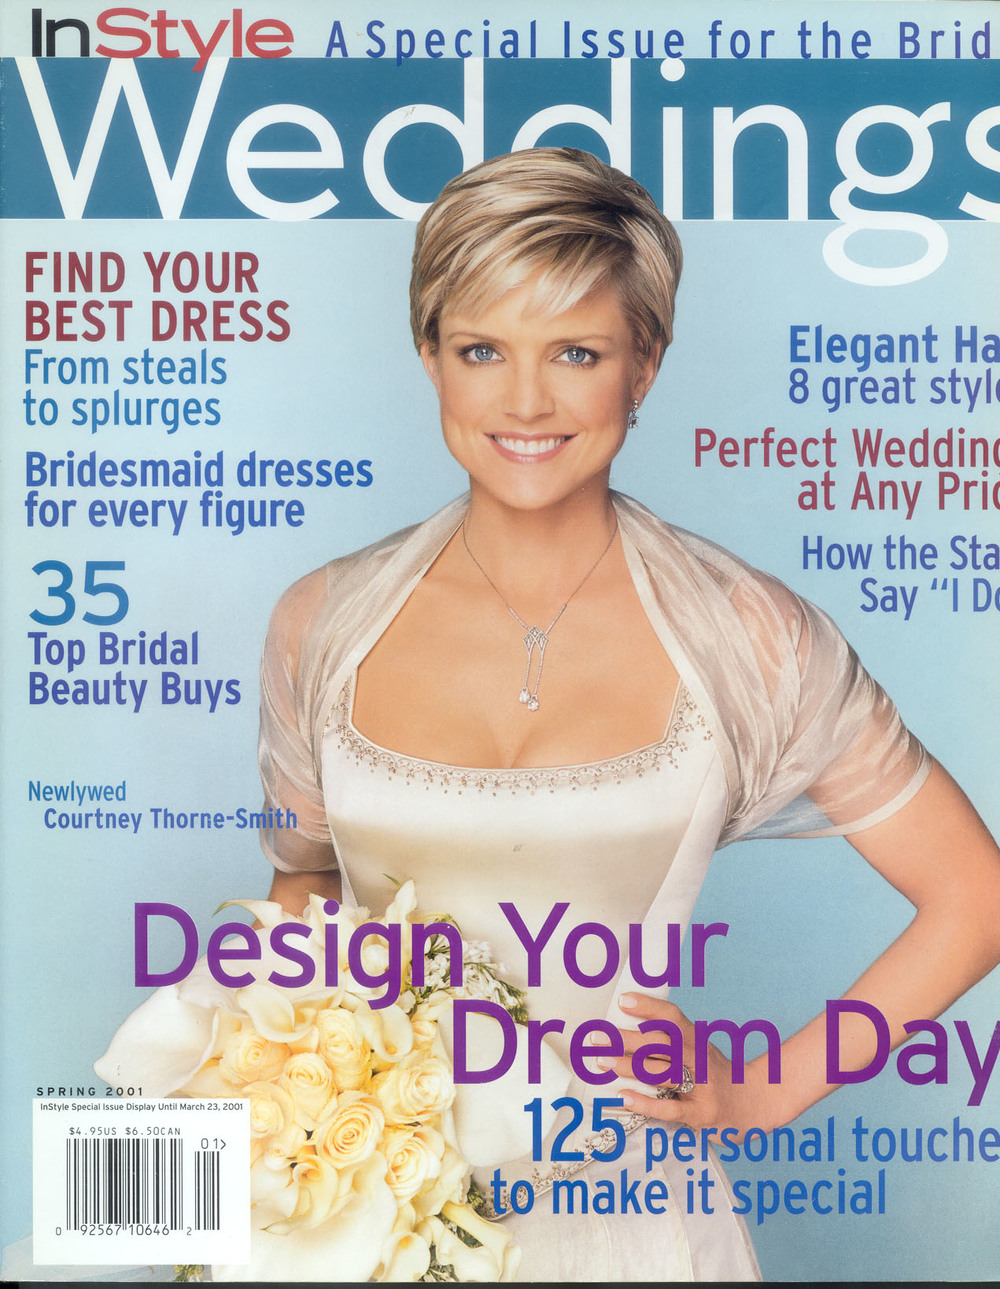 instyle weddings cover.jpg